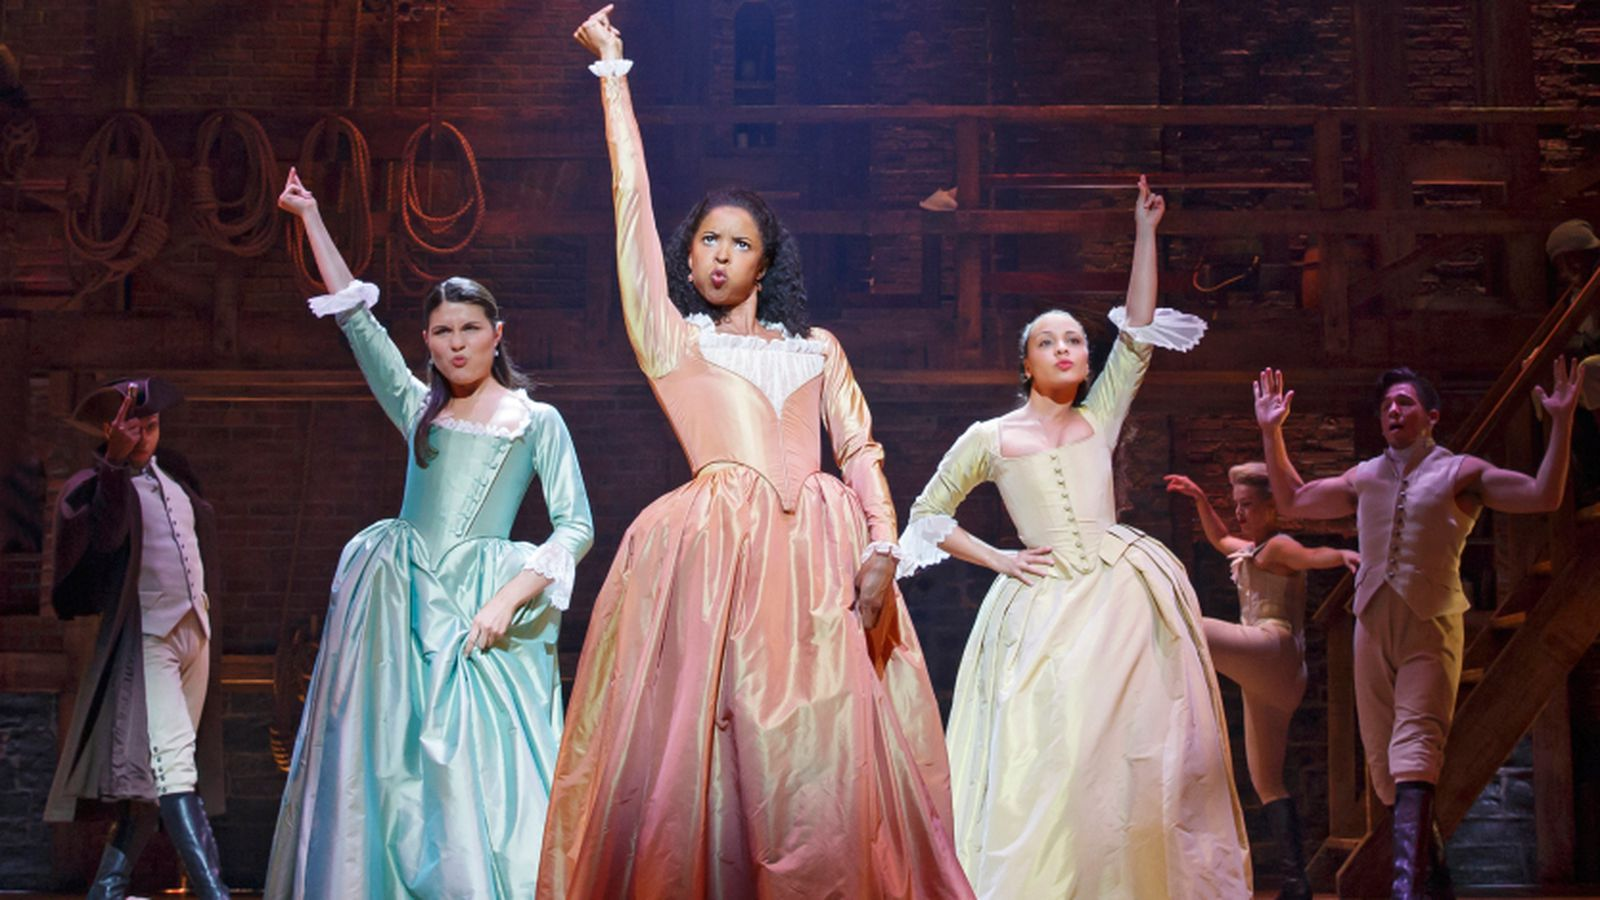 The Schuyler sisters from Hamilton